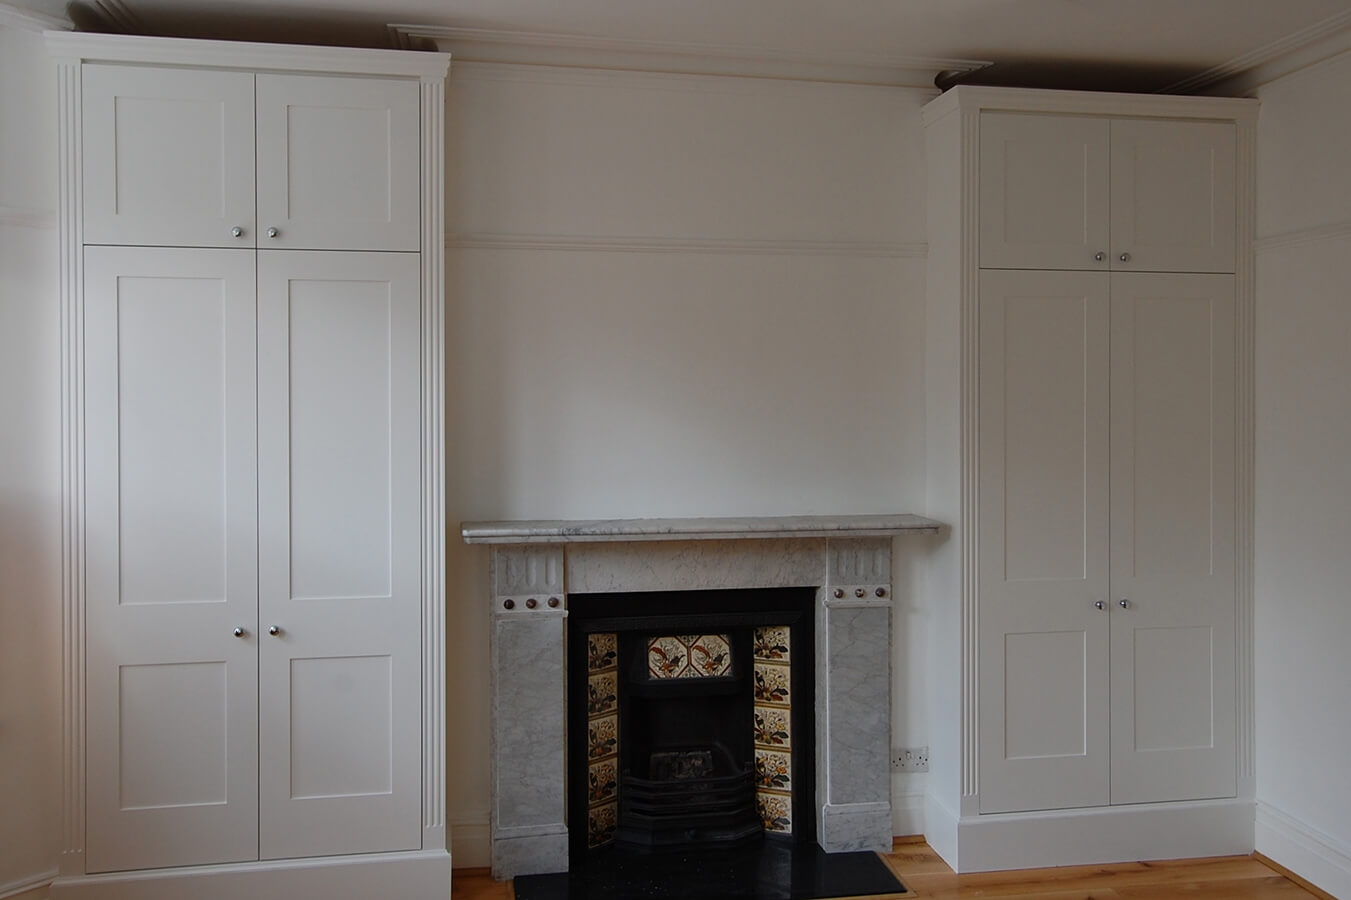 London Built In Wardrobes Alcoves Google Search Bedroom Ideas With Regard To Alcove Wardrobes Designs (Image 12 of 15)